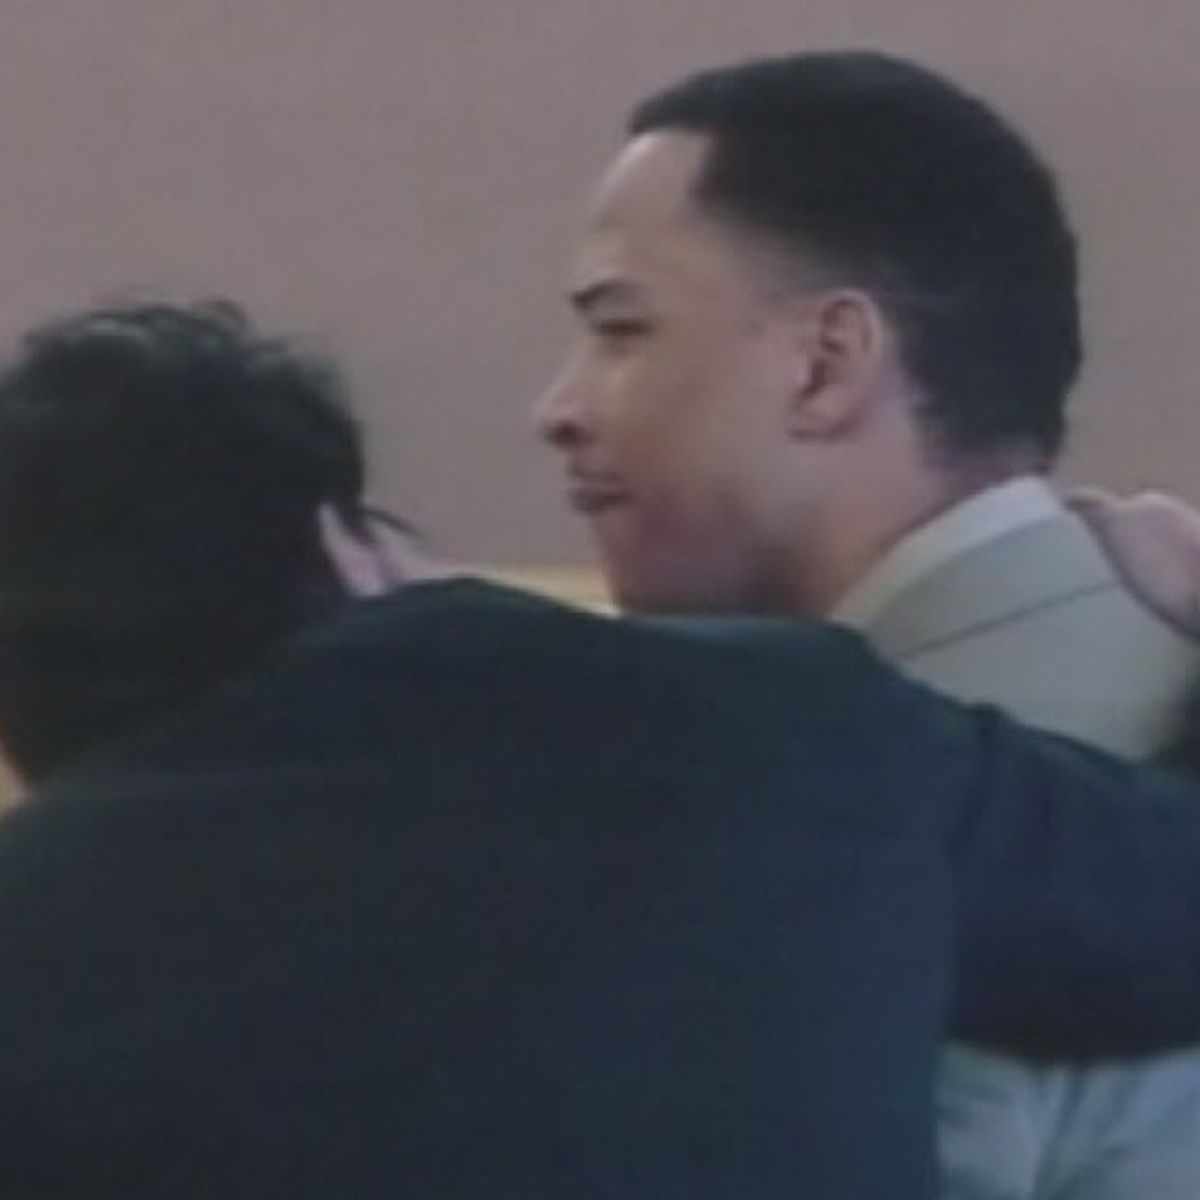 Former prosecutor speaks about Carruth trial ahead of former Panther's release from prison